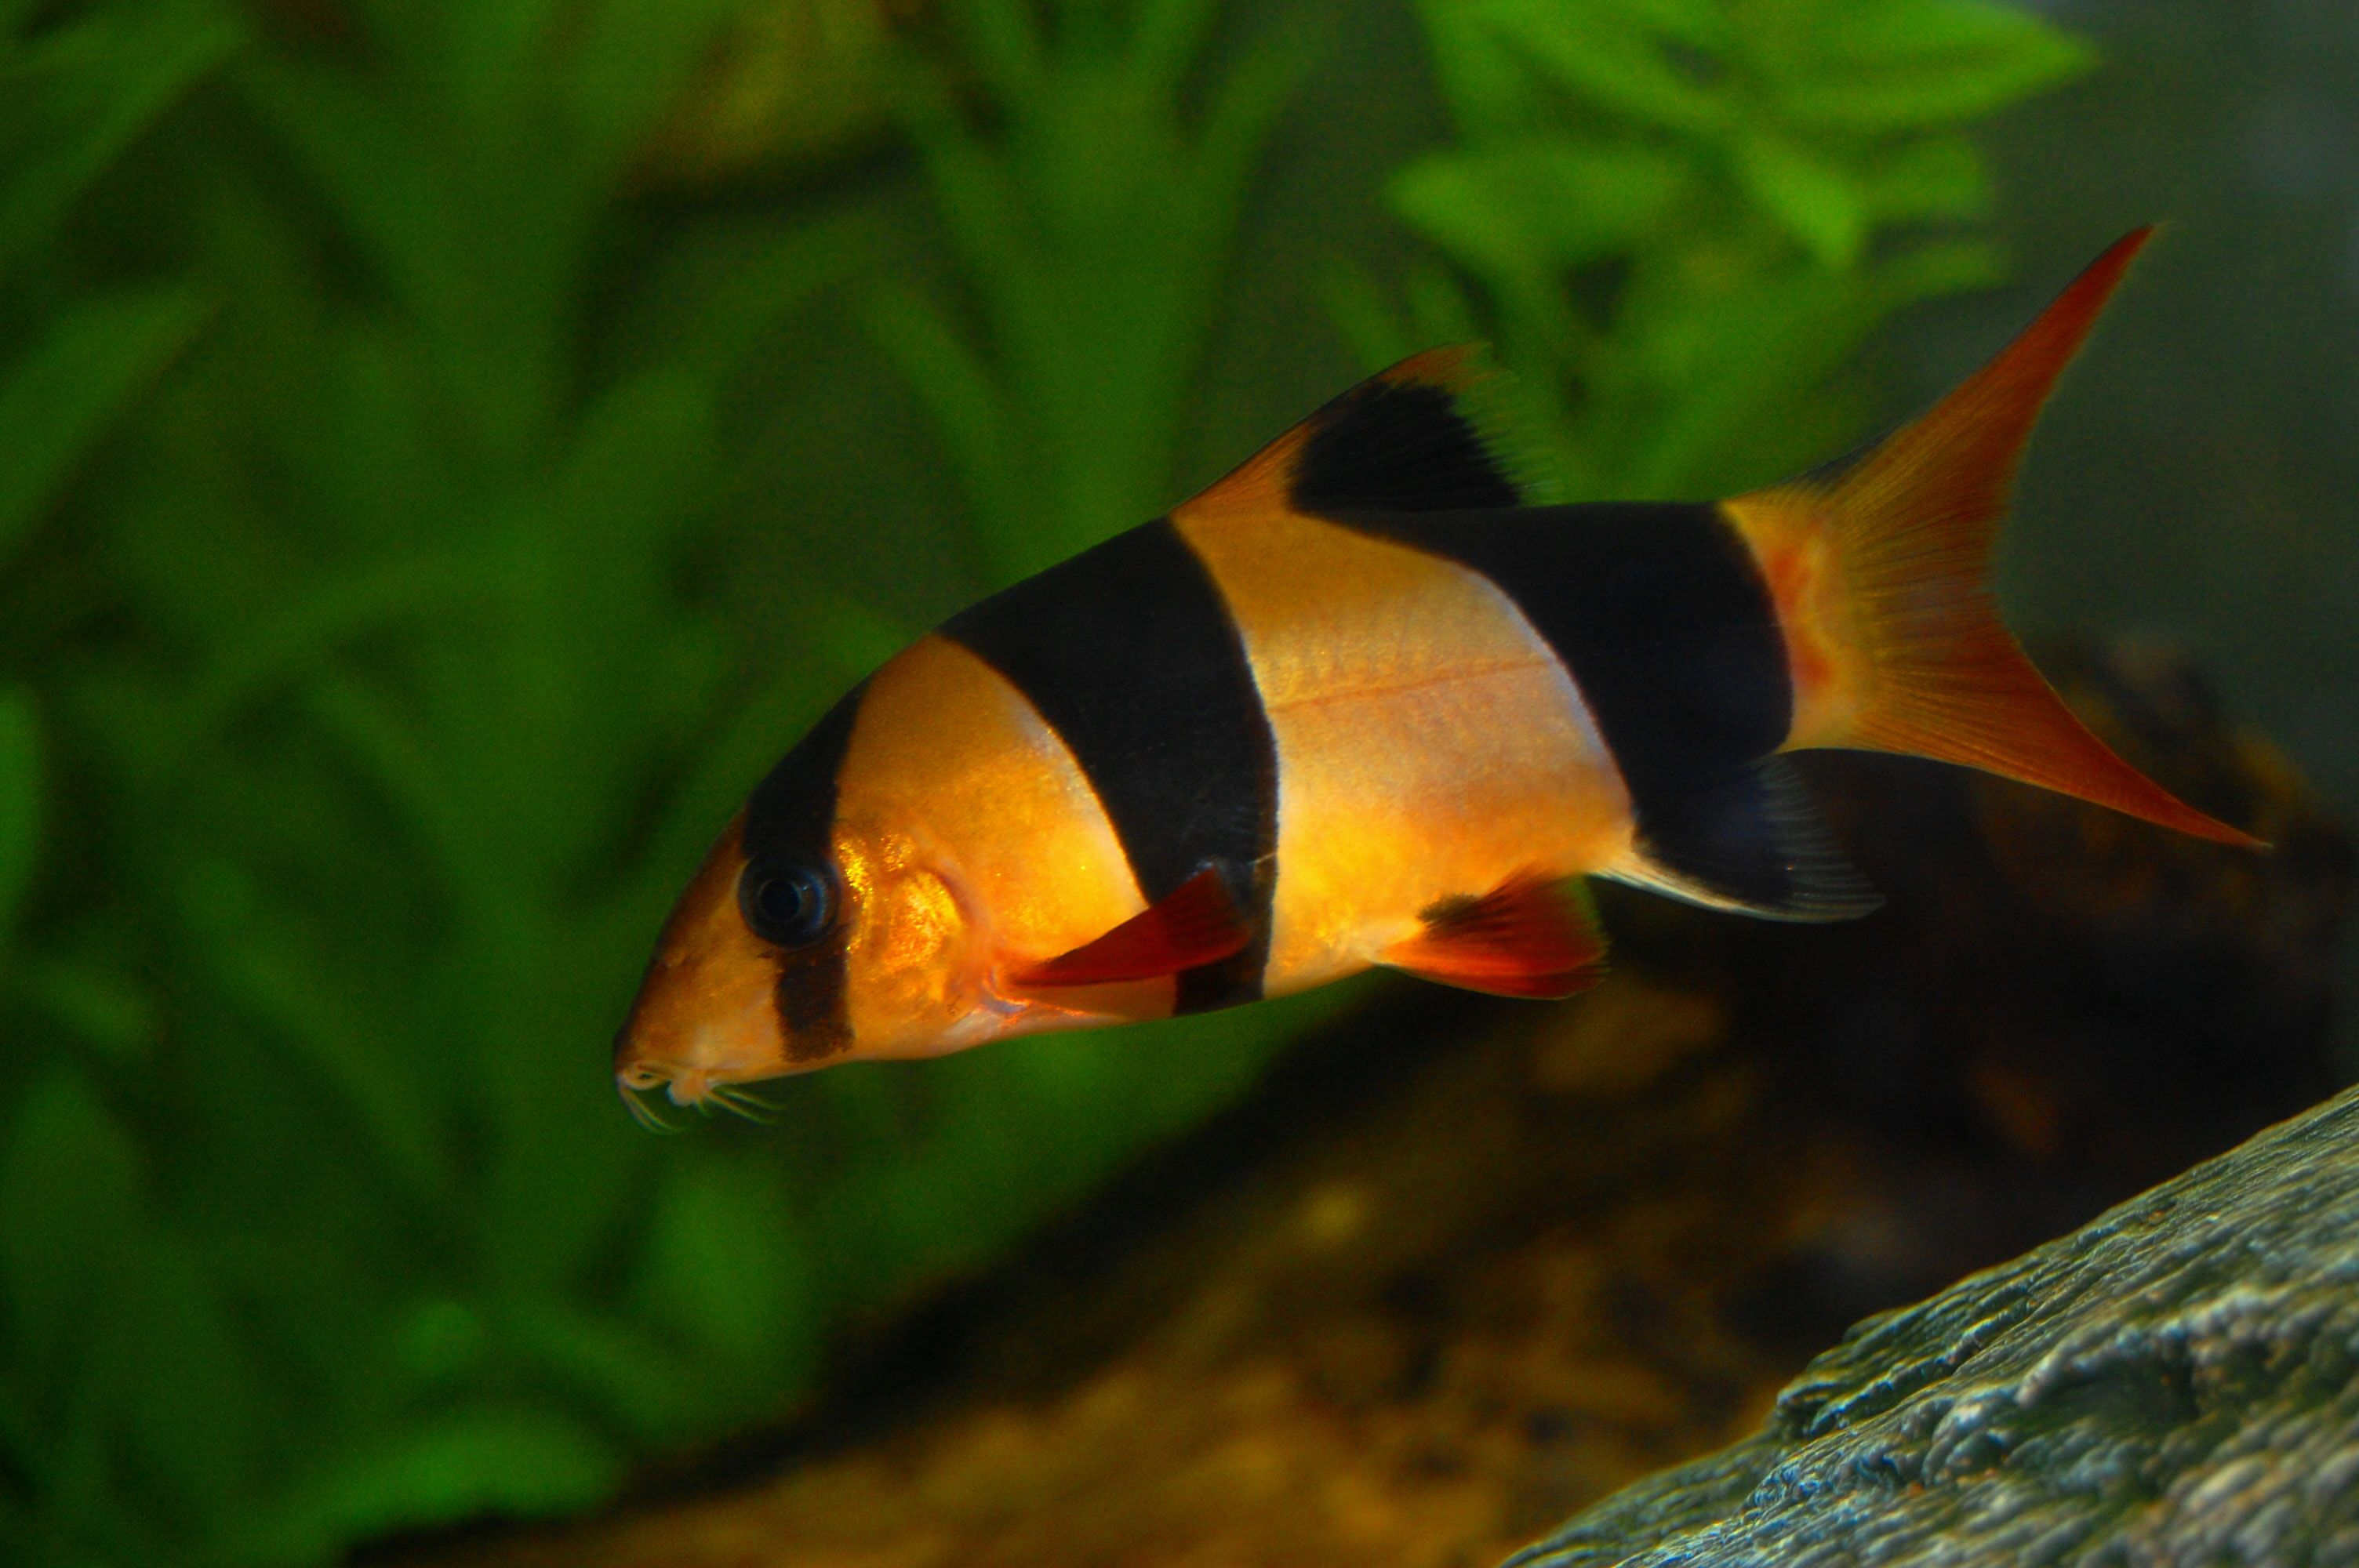 Fish aquarium wiki - Check Out The Clown Loach Wiki And If